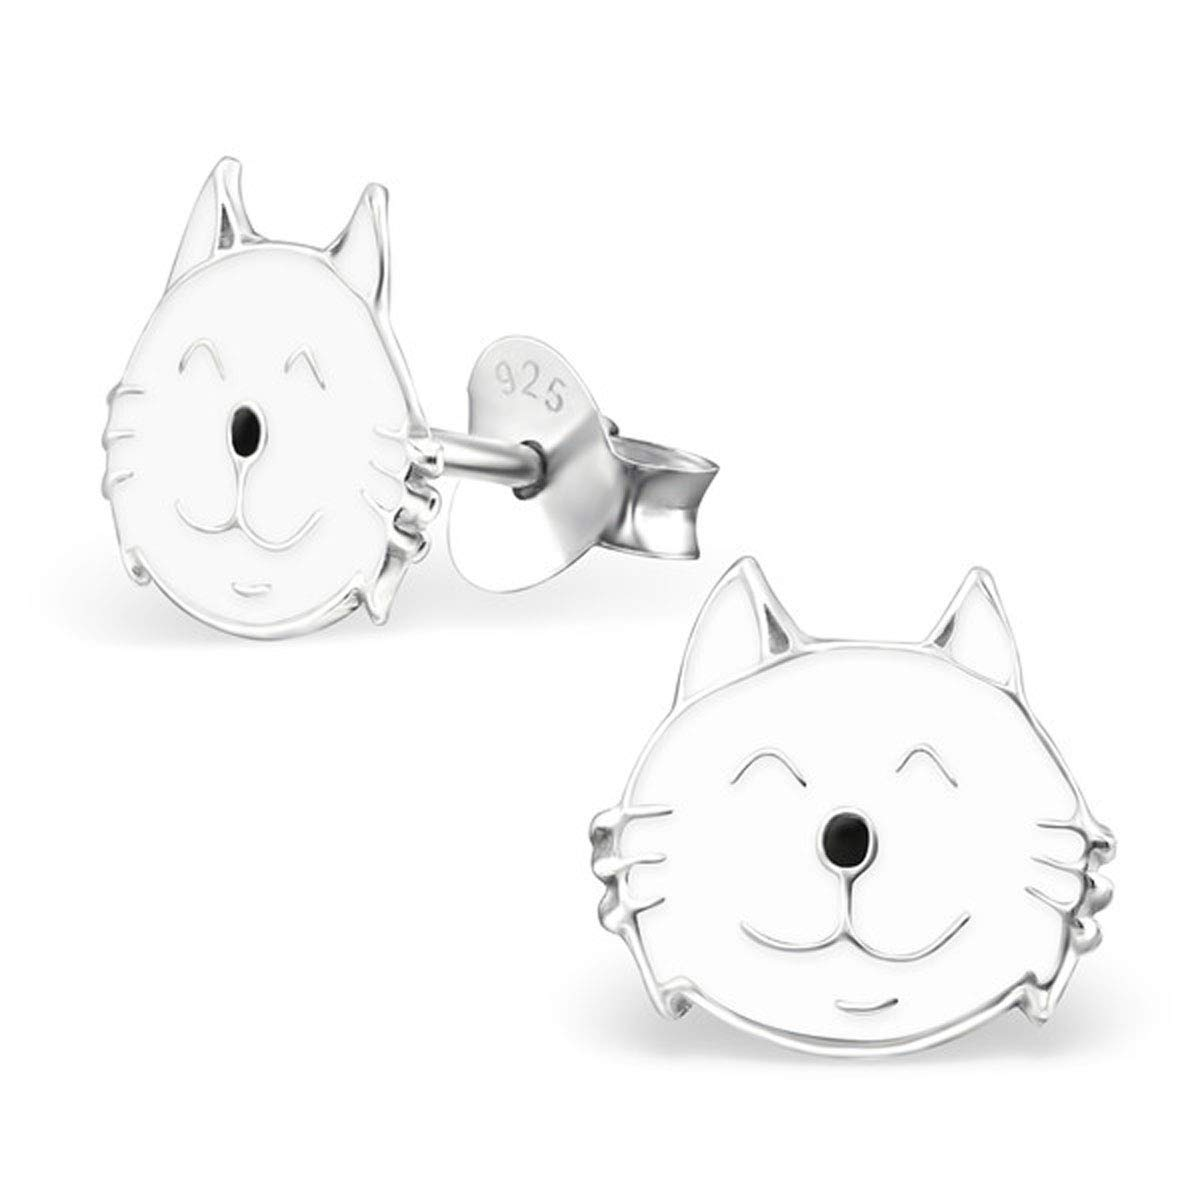 925 Sterling Silver, Cat Earrings Children Earrings White Ear Studs E13006